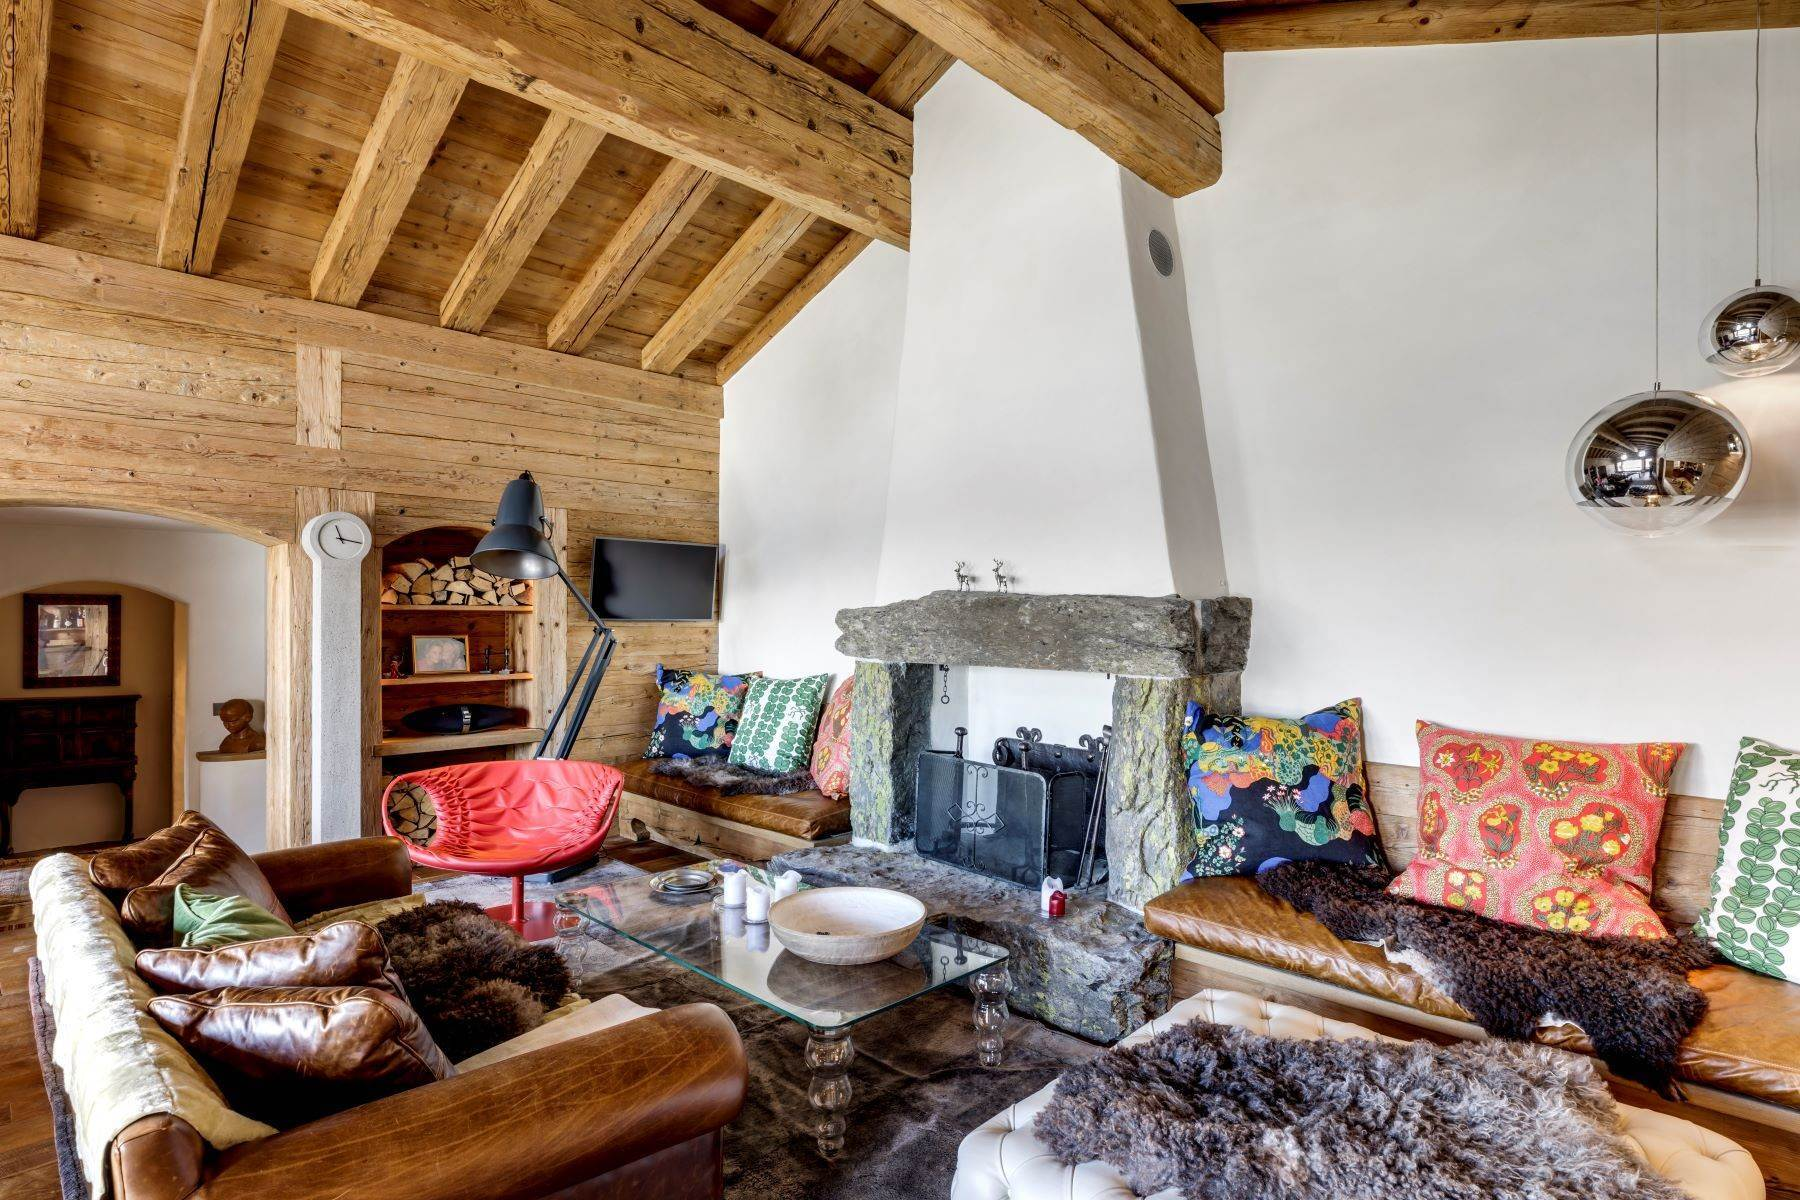 Single Family Homes for Sale at Chalets JOLI BOIS & CIEL BLEU Verbier Verbier, Valais 1936 Switzerland